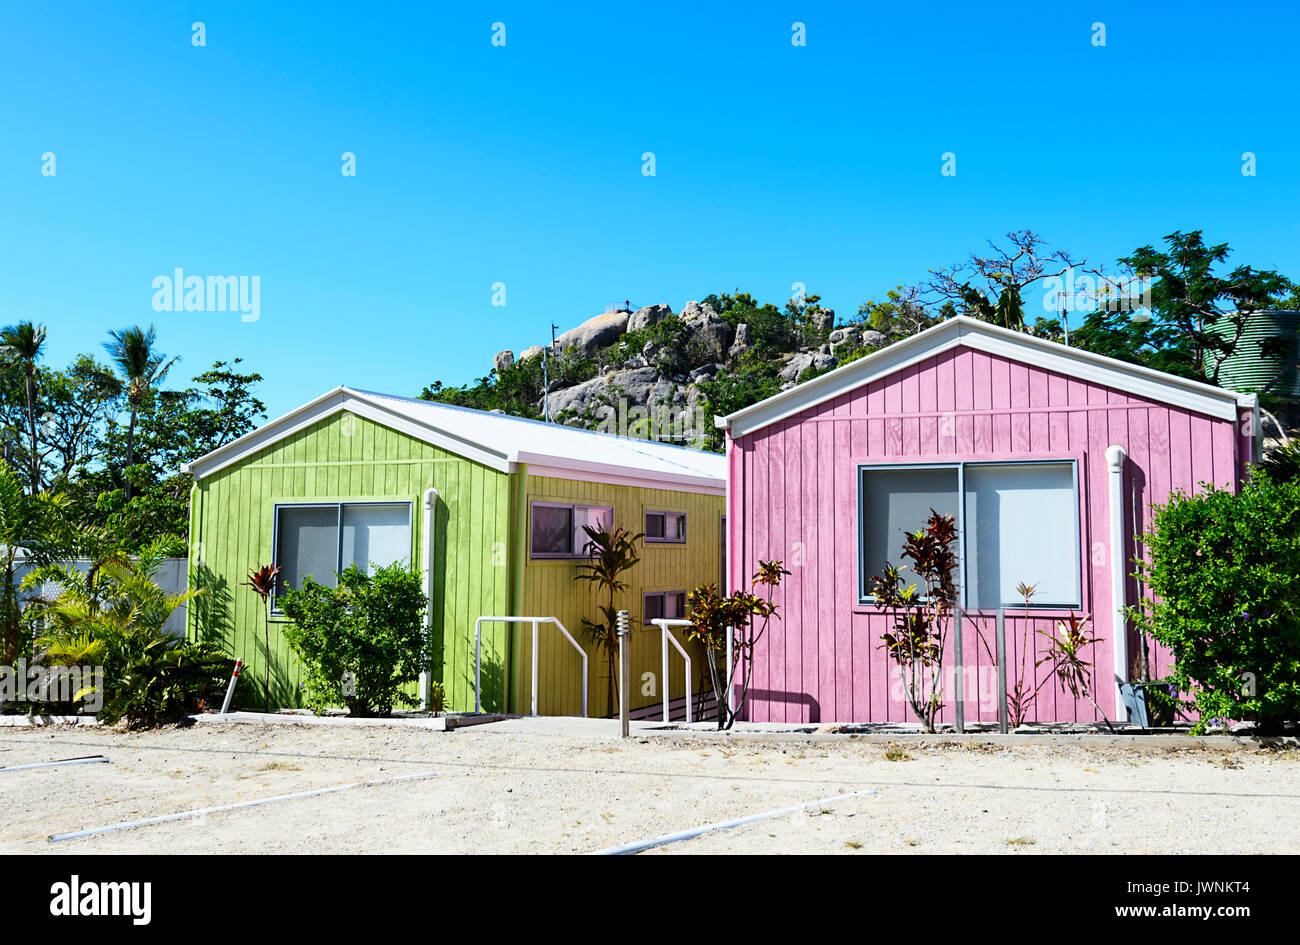 Row of pastel coloured cabins, Horseshoe Bay, Bowen, Queensland, QLD, Australia - Stock Image